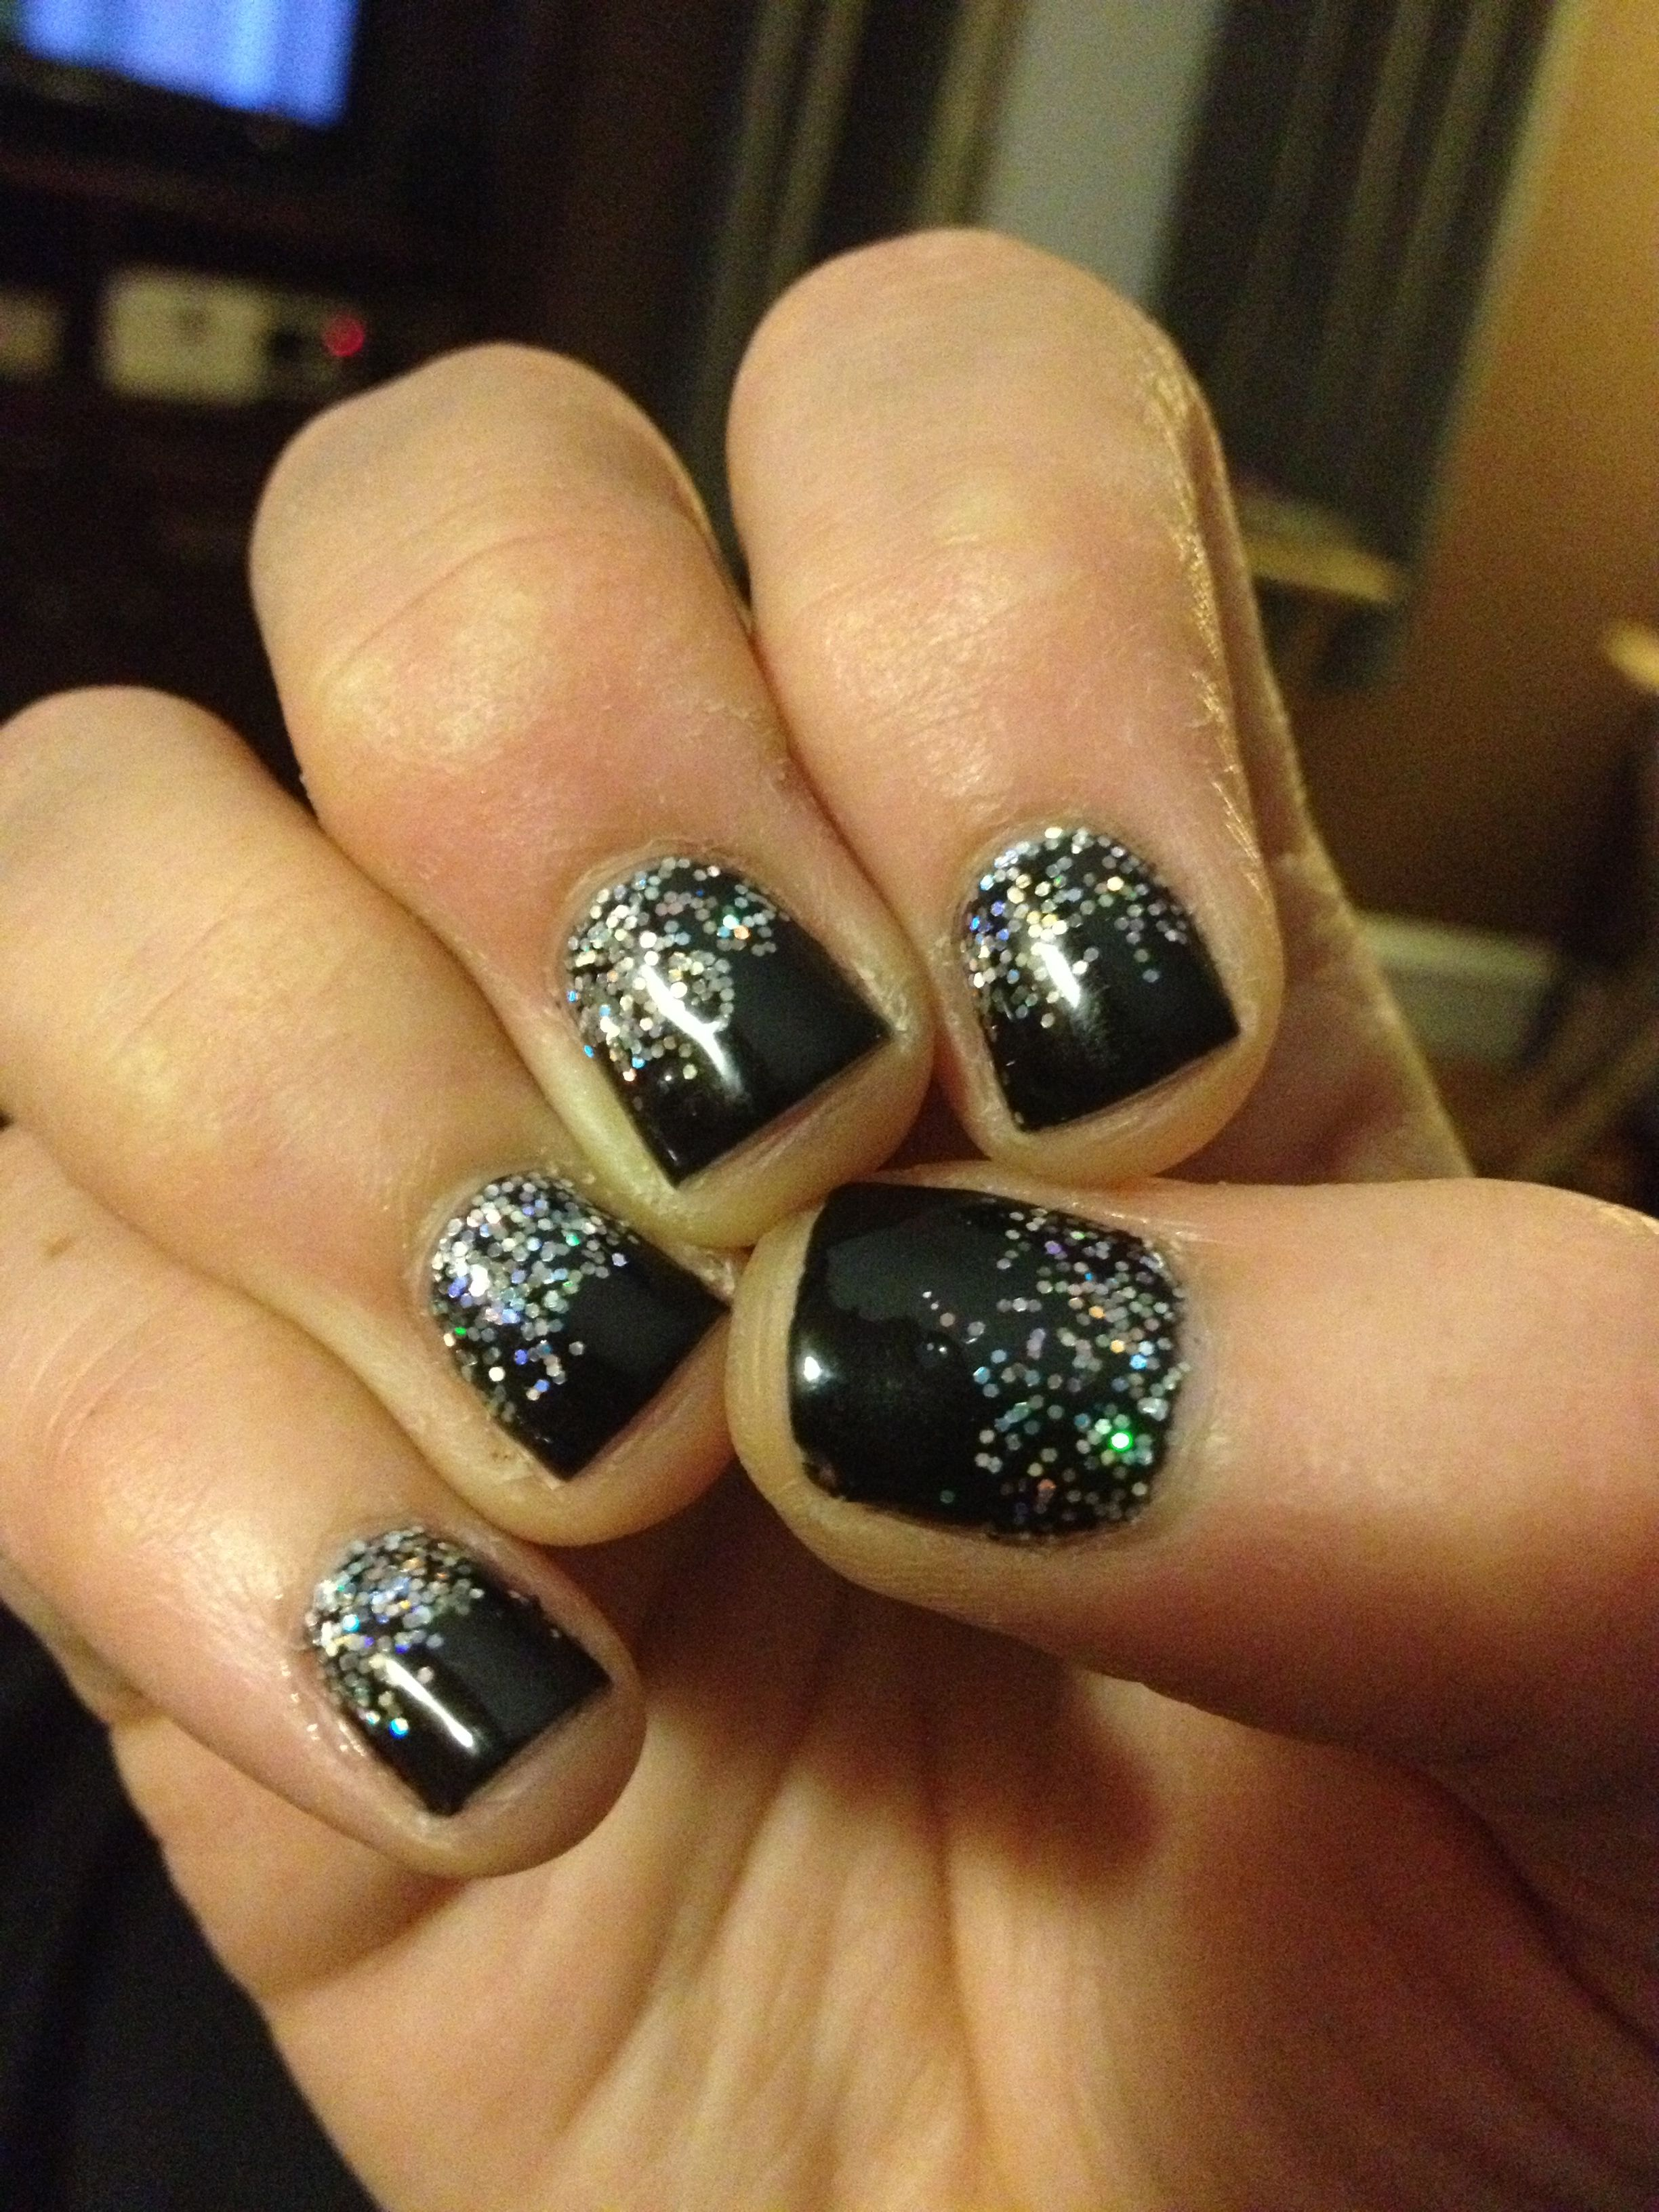 Black OPI GEL manicure w/ loose iridescent glitter applied and the ...